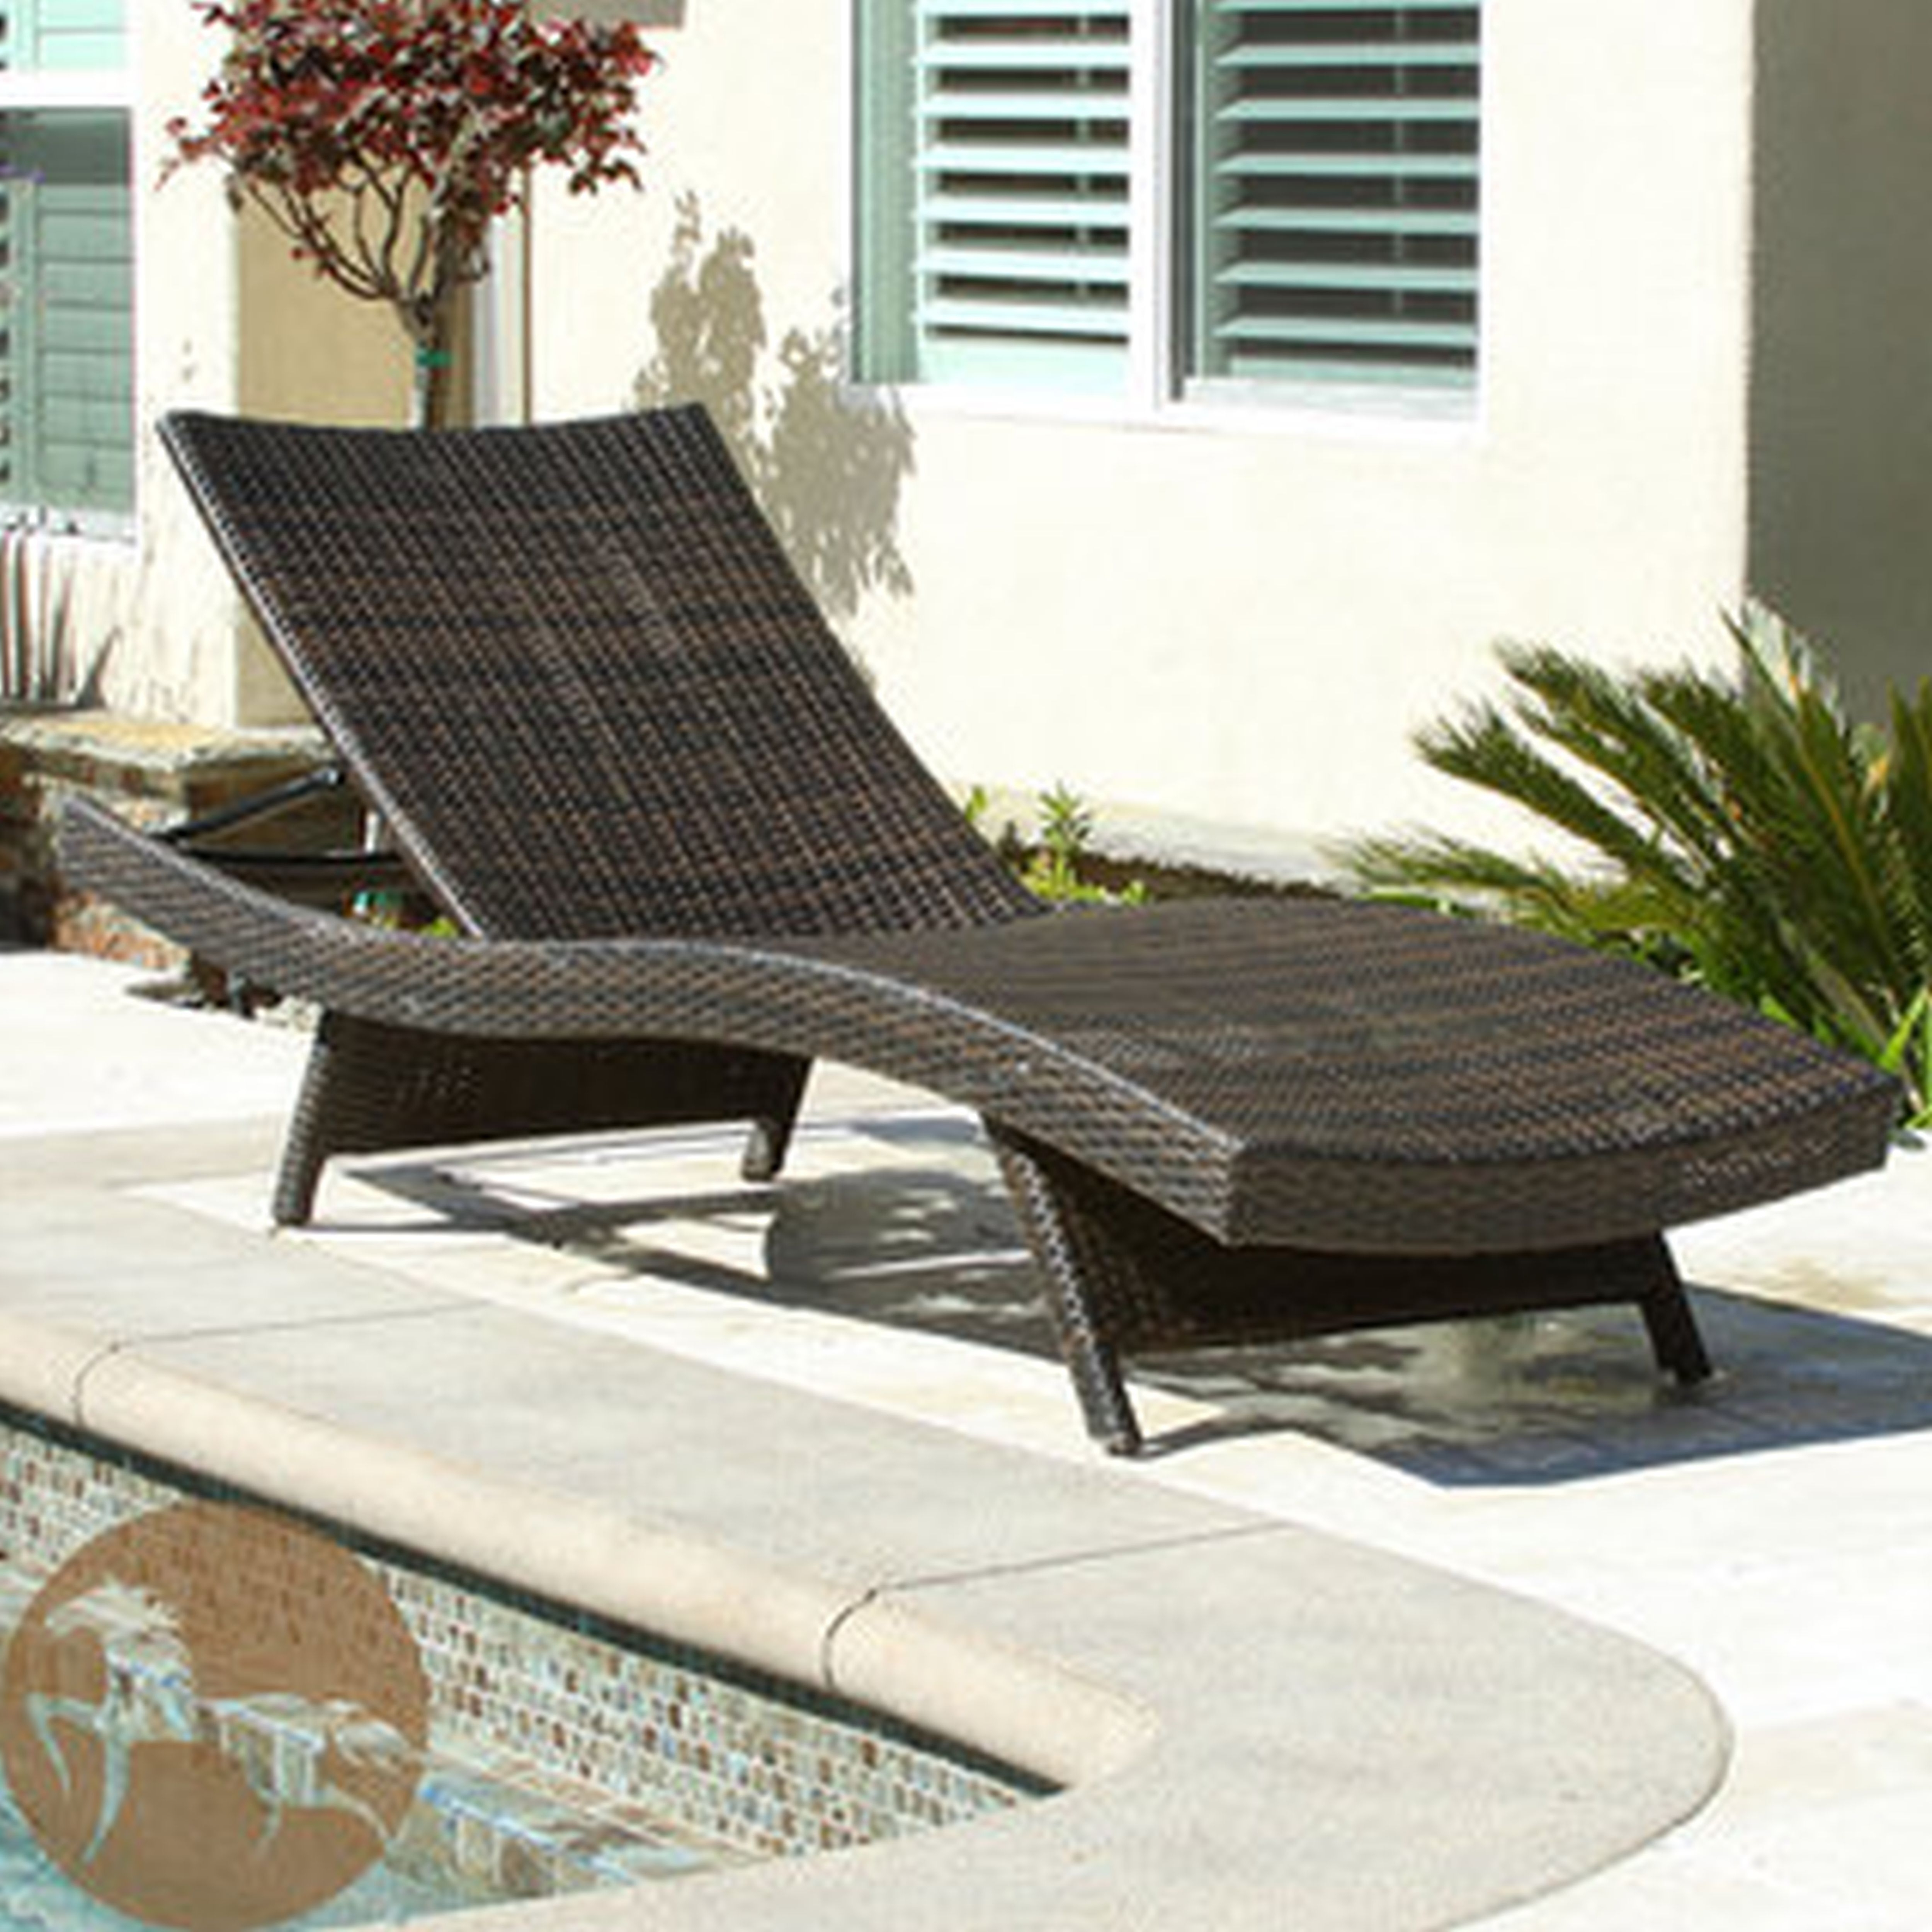 Chaise Lounge Reclining Chairs For Outdoor Intended For Most Recently Released Outdoor Patio Chaise Lounge Chairs • Lounge Chairs Ideas (View 4 of 15)